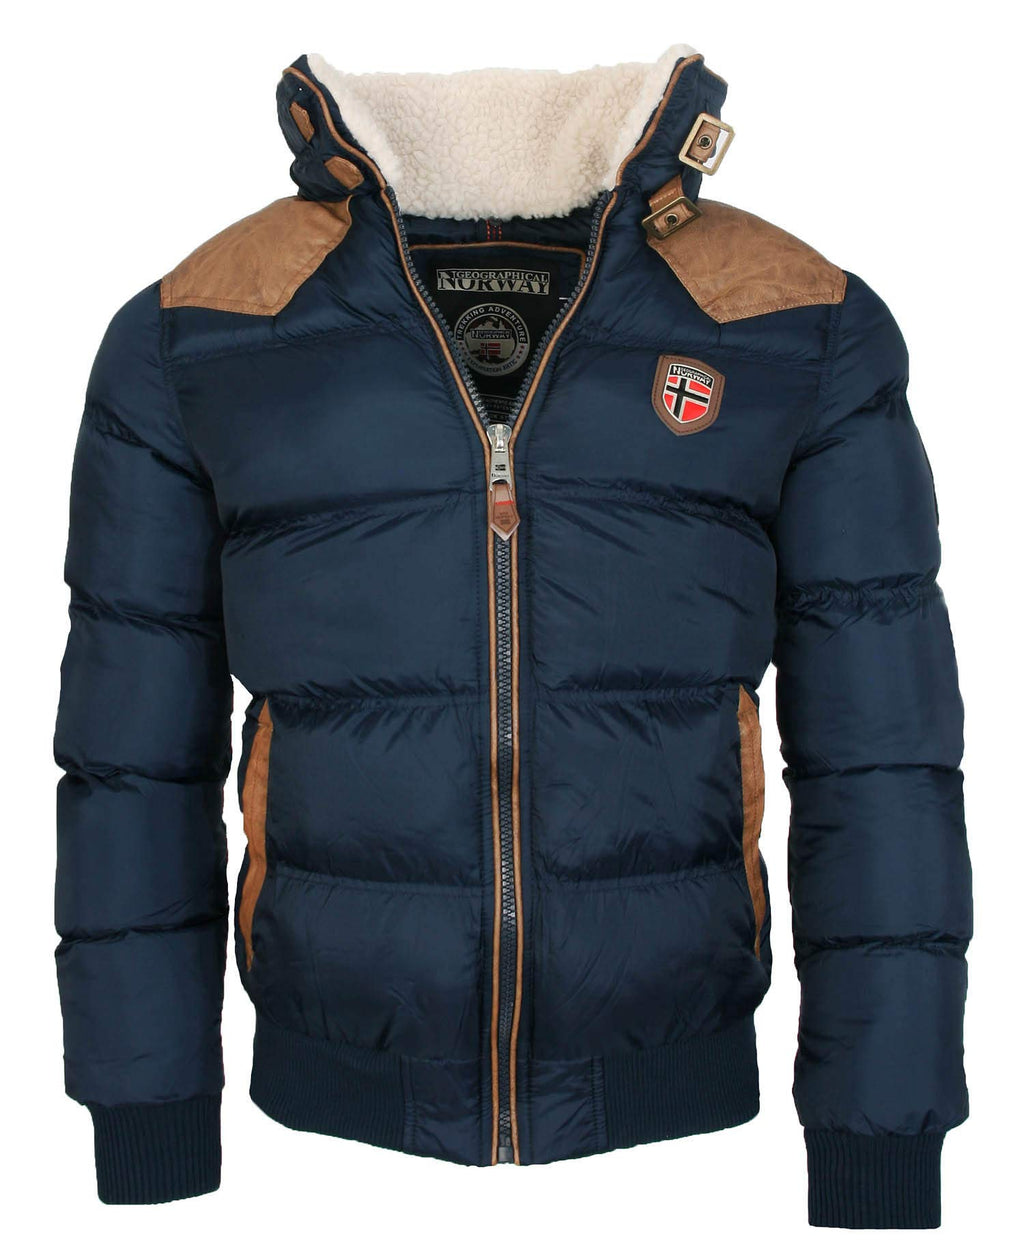 Abbigliamento Geographical Norway -  Giacca - Trench - Manica Lunga - Uomo Blu Navy S Marche Famose